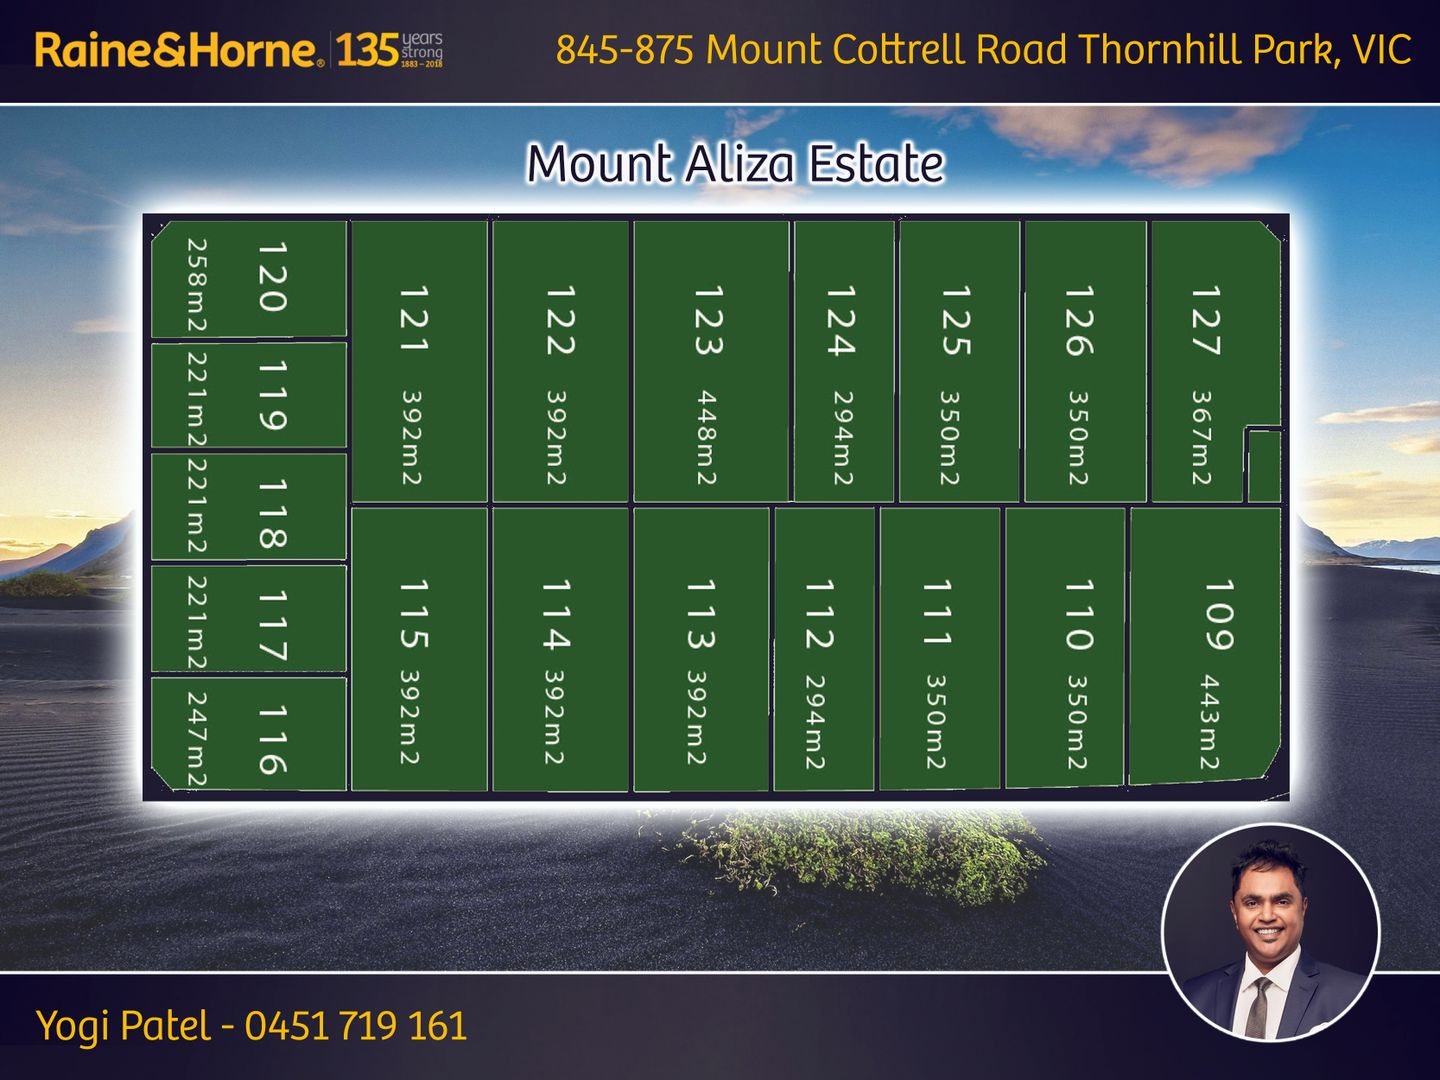 845-875 MOUNT COTTRELL ROAD, Thornhill Park VIC 3335, Image 0